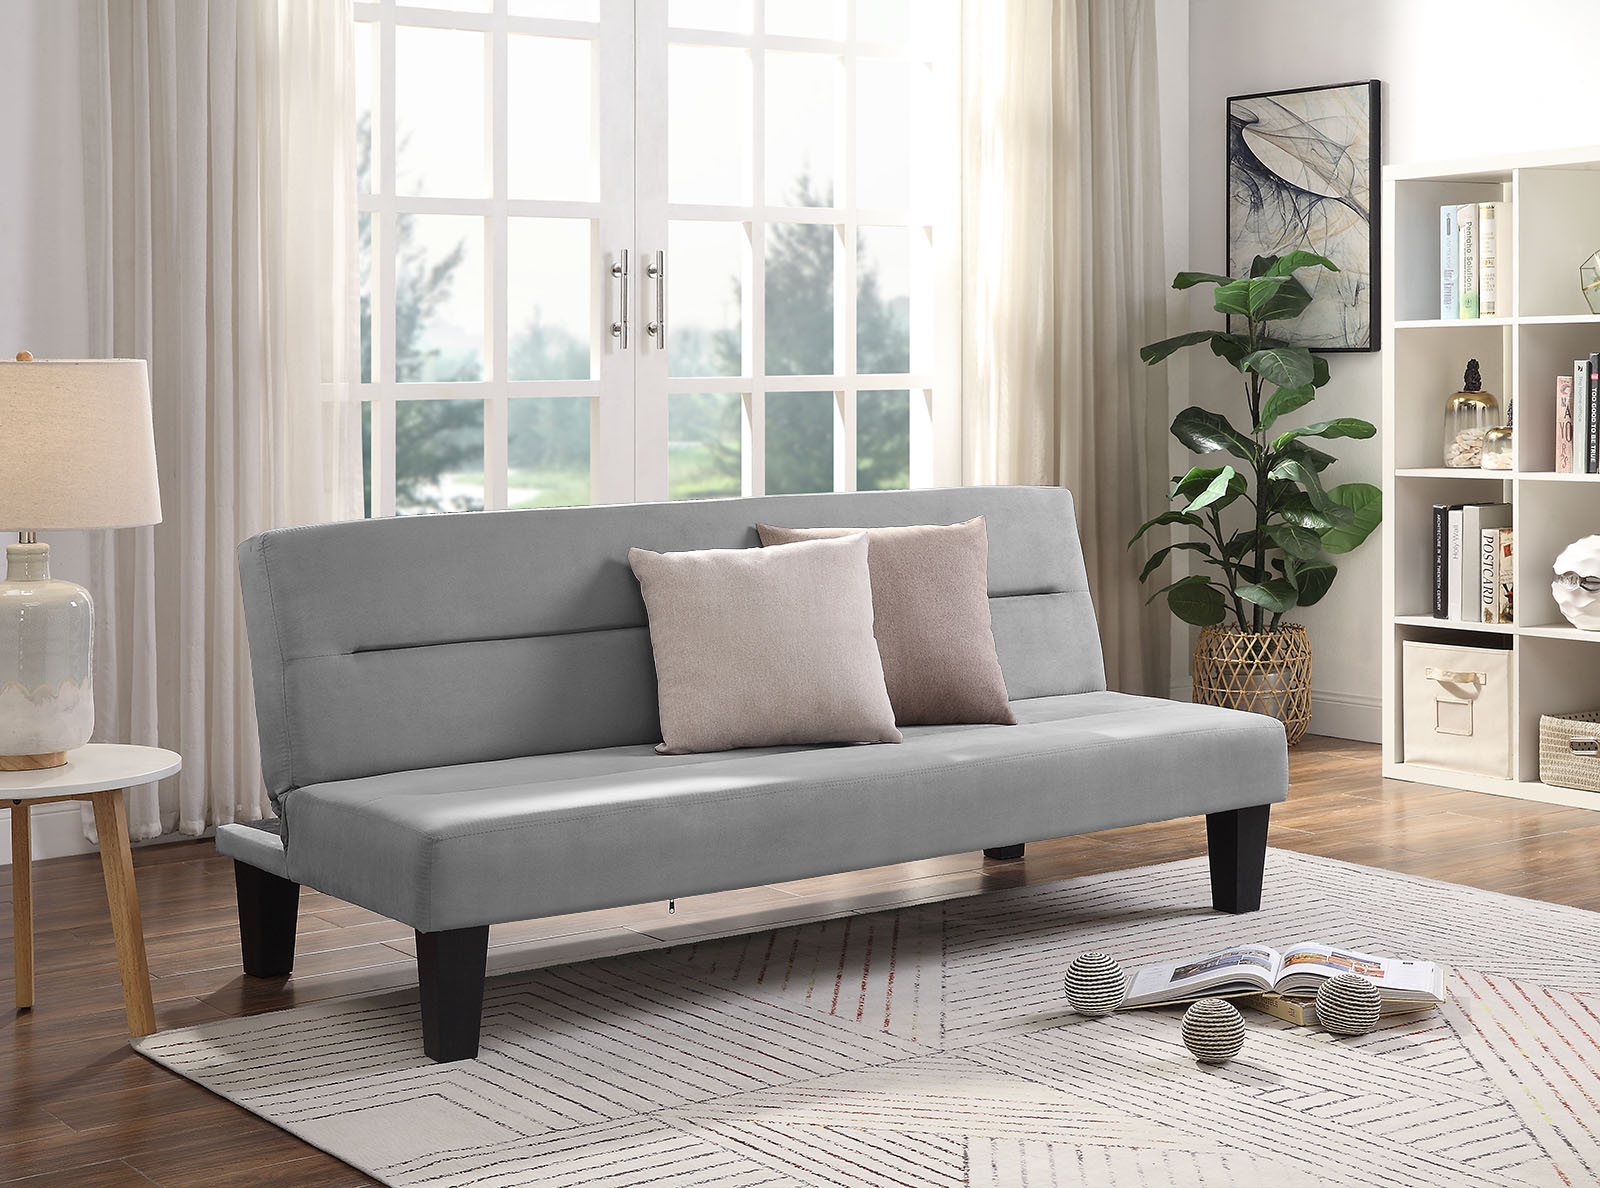 luxurygoods modern futon couch with gray microfiber cover sleeper sofa bed